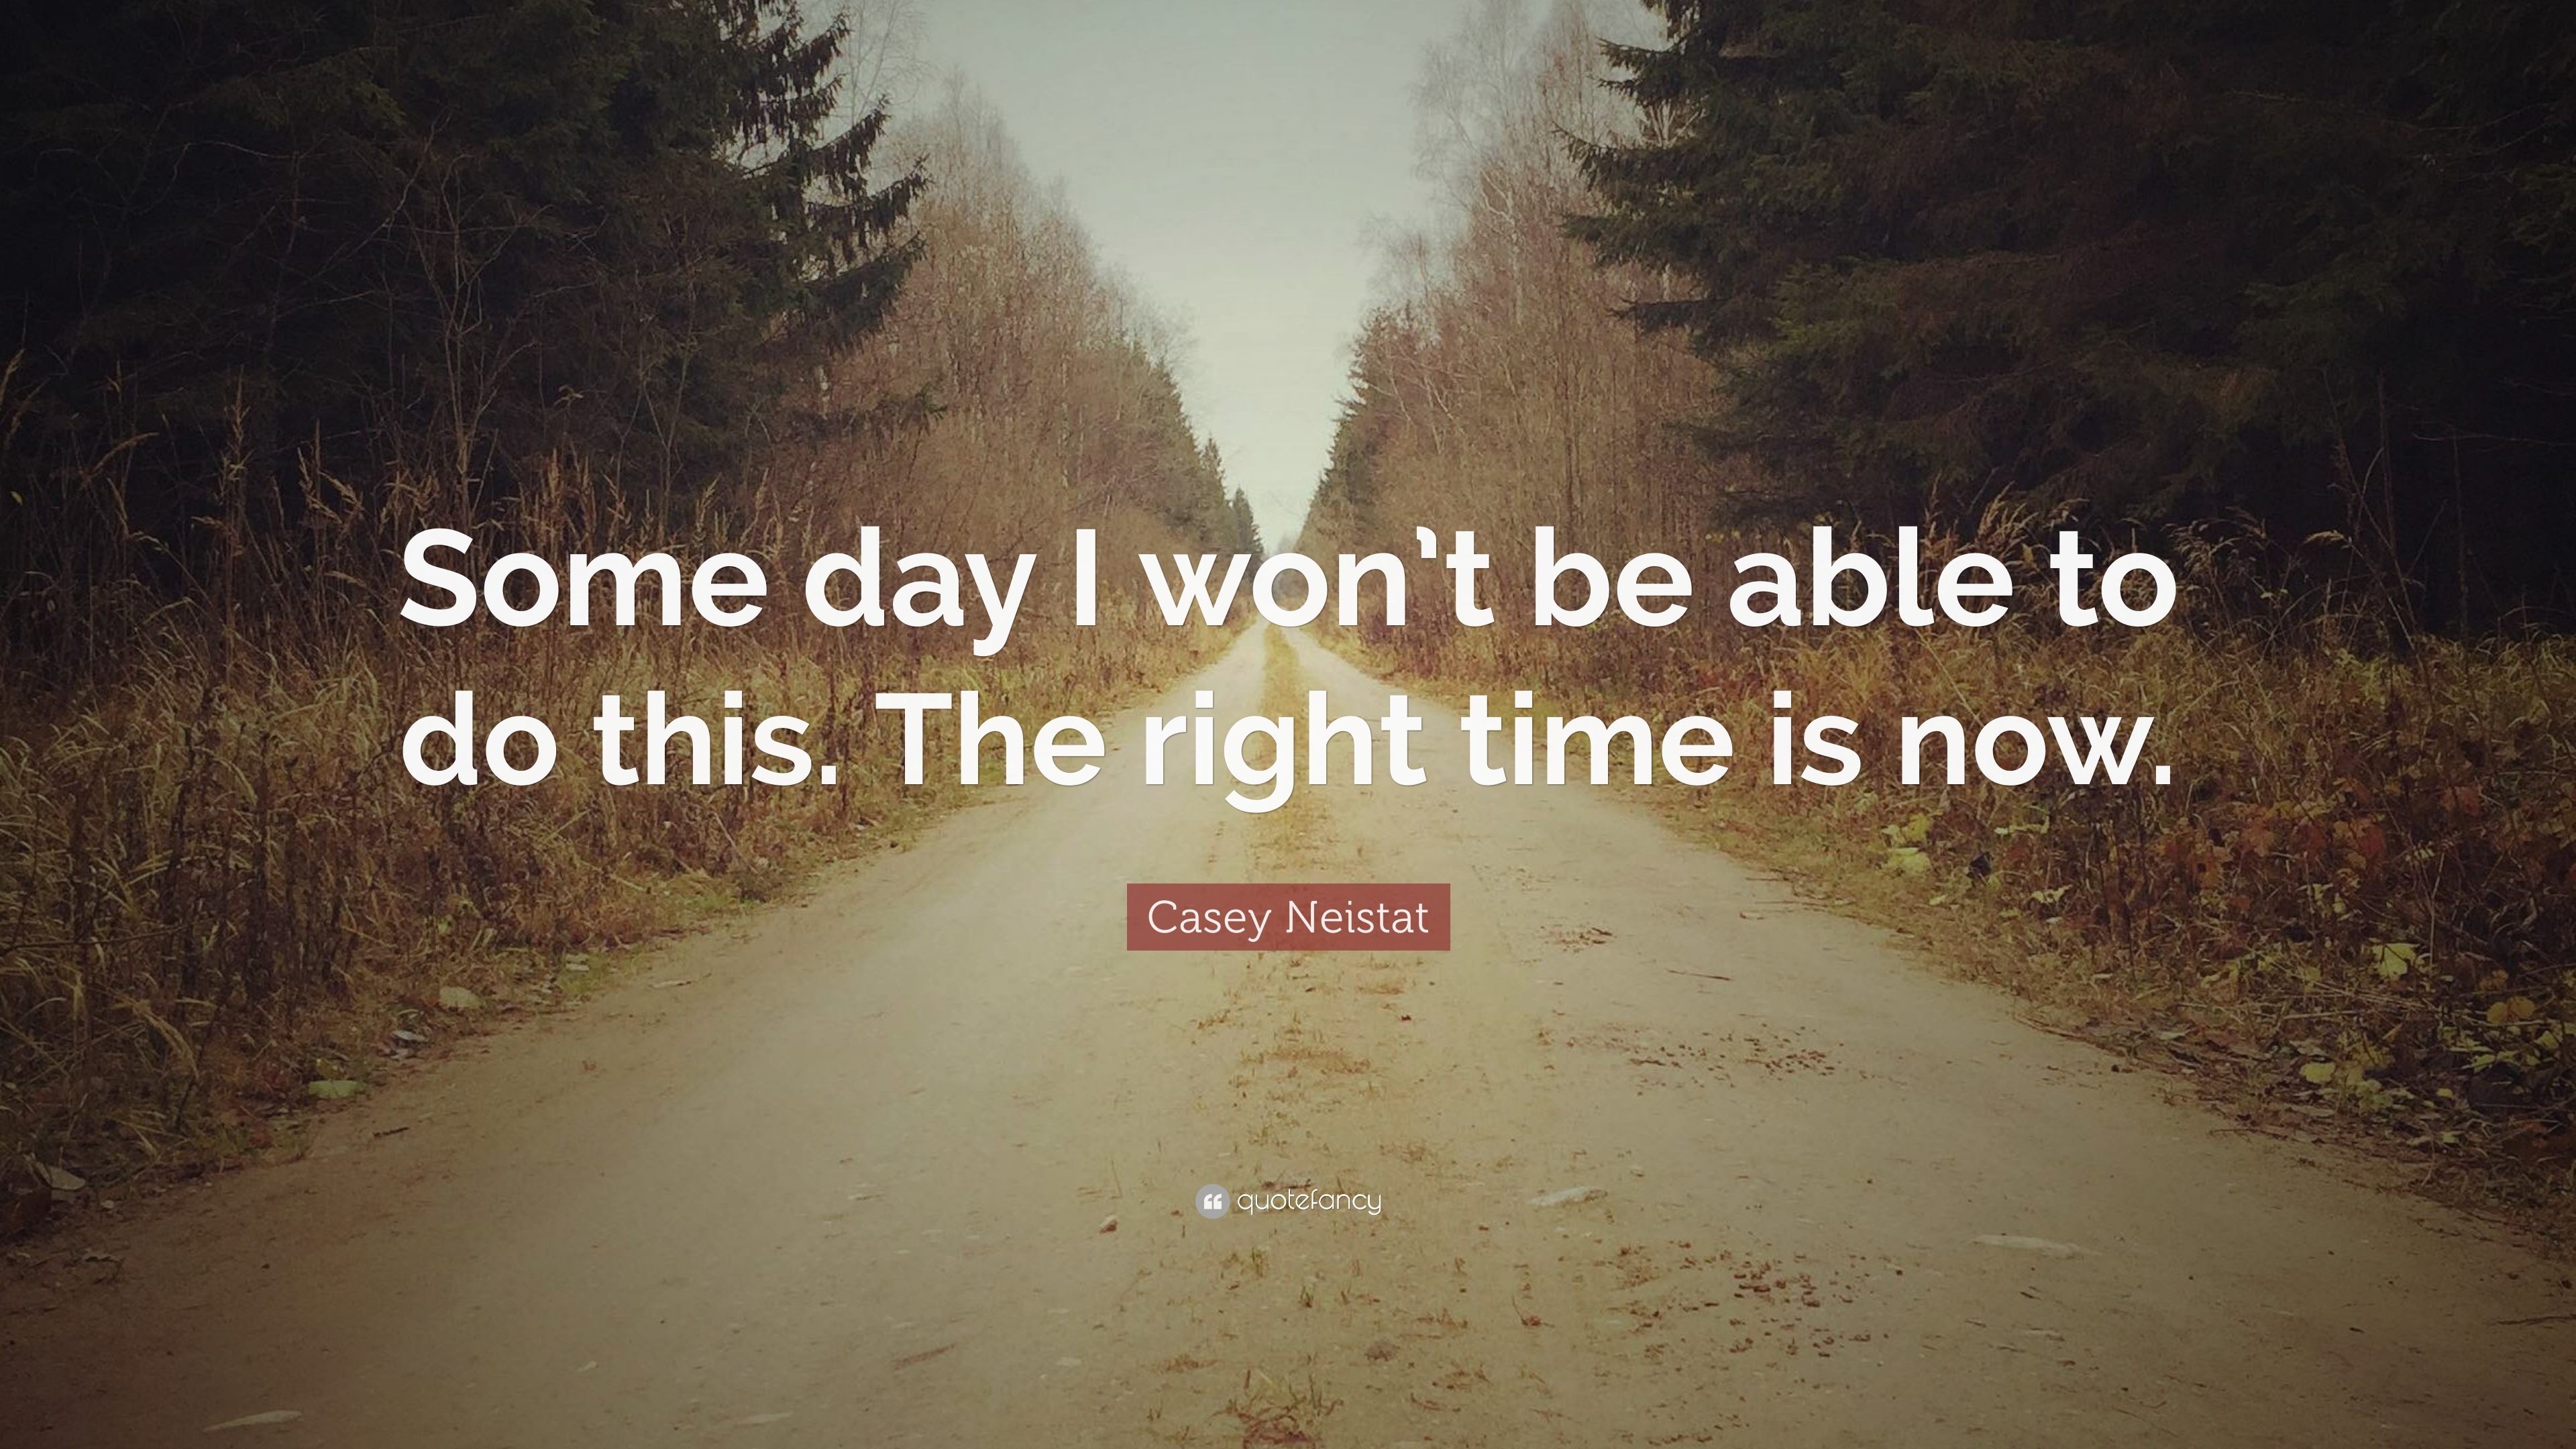 Casey Neistat Quotes Wallpaper Casey Neistat Quote Some Day I Won T Be Able To Do This